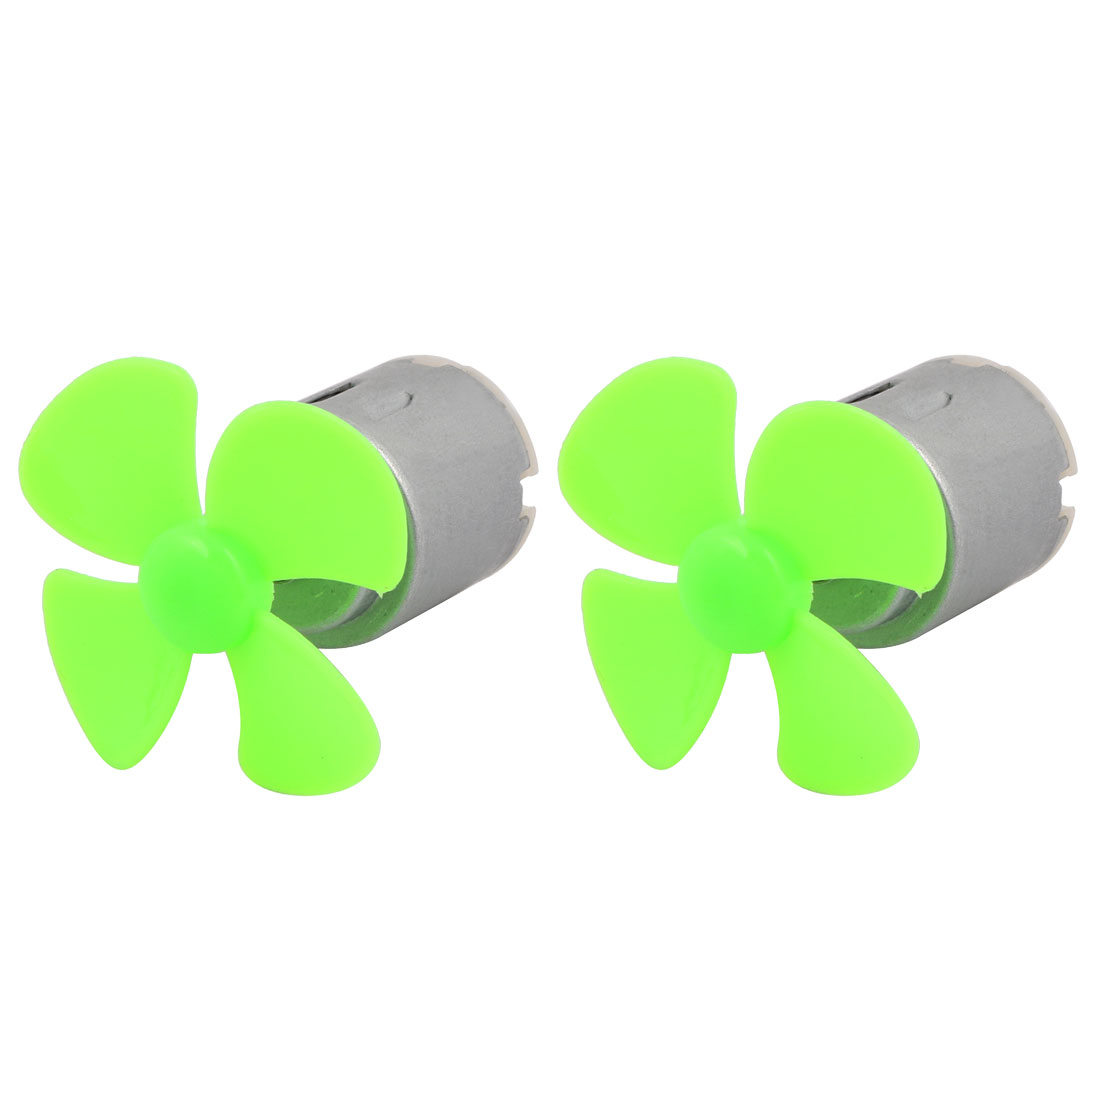 2pcs DC 3V 0.13A 13000RPM Strong Force Motor 4 Blades 40mm Green Propeller for RC Aircraft